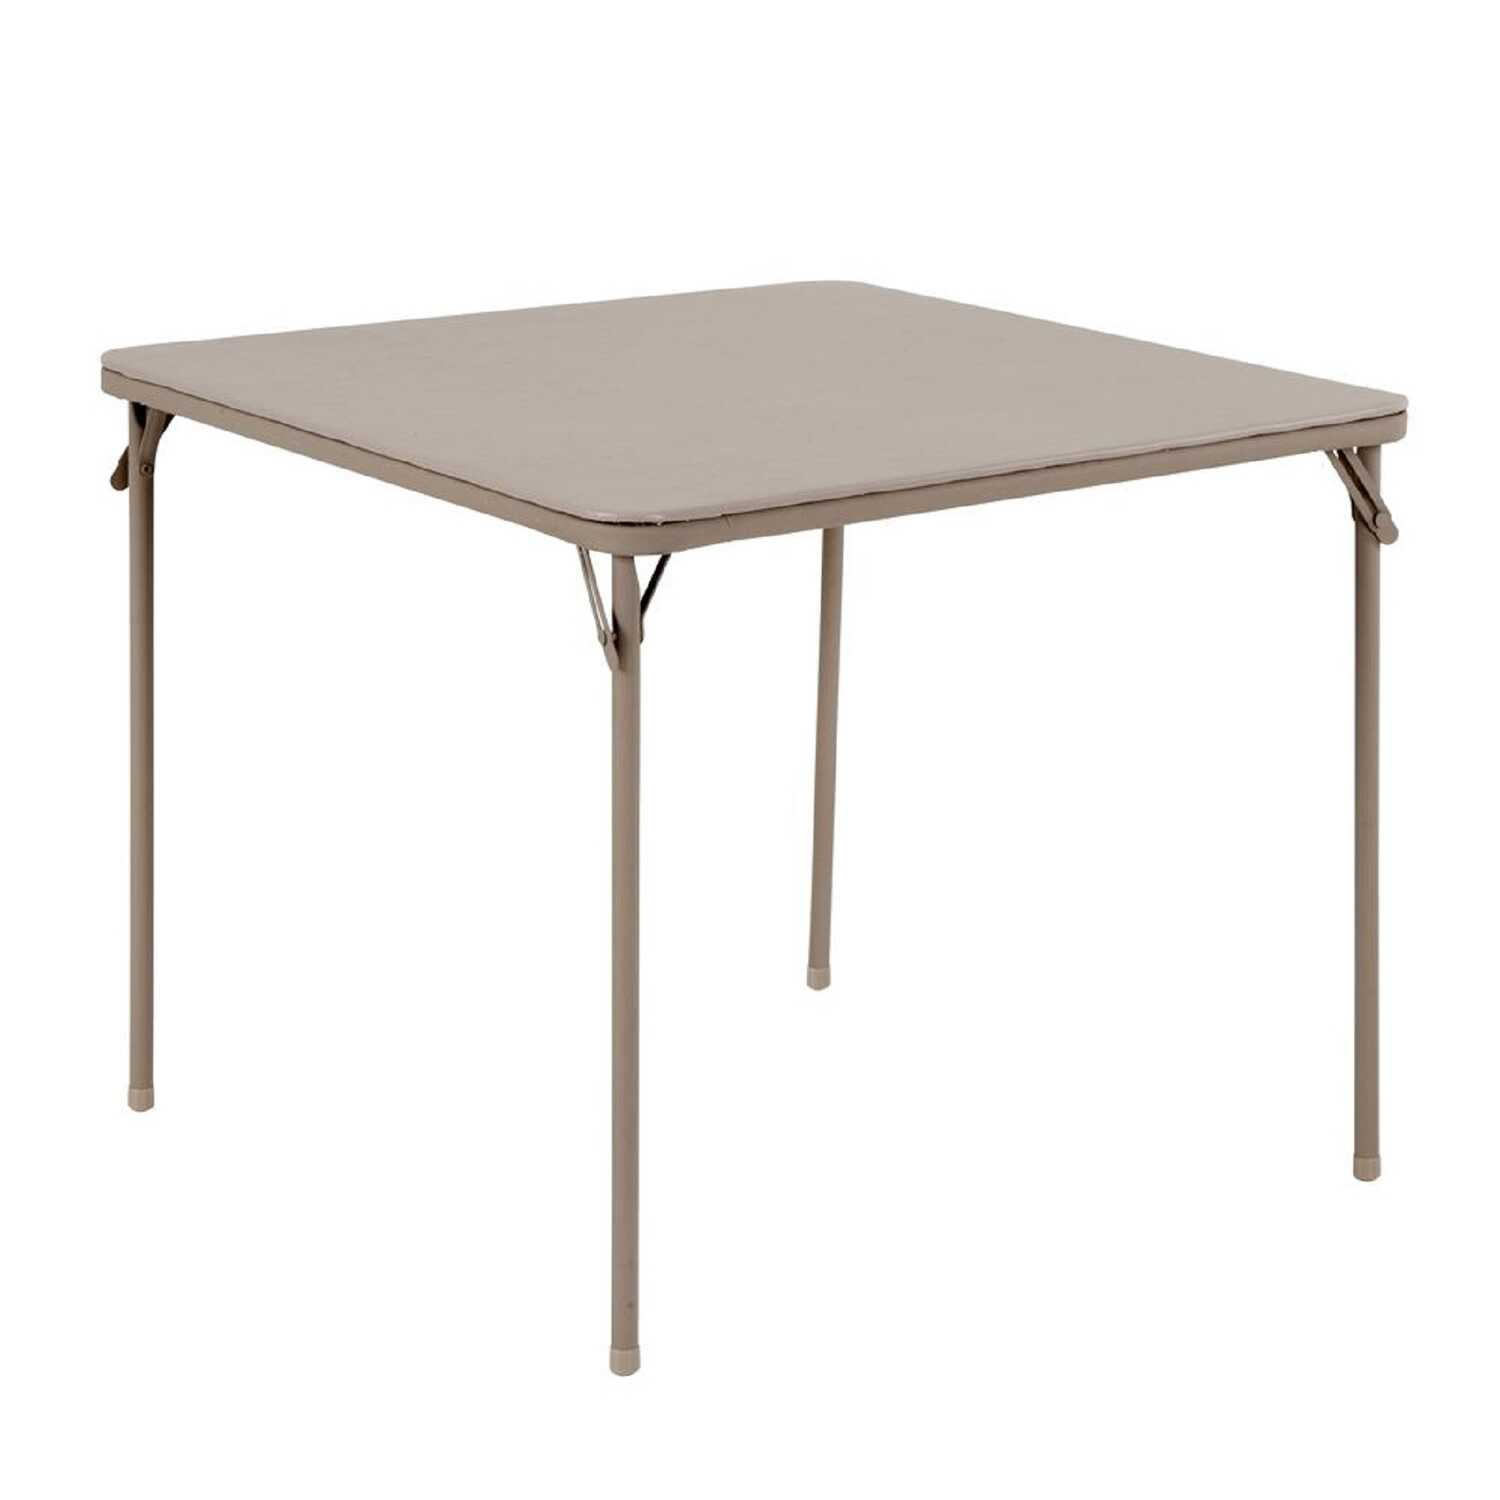 Cosco  28 in. H x 33-3/4 in. W x 33-3/4 in. L Square  Folding Table